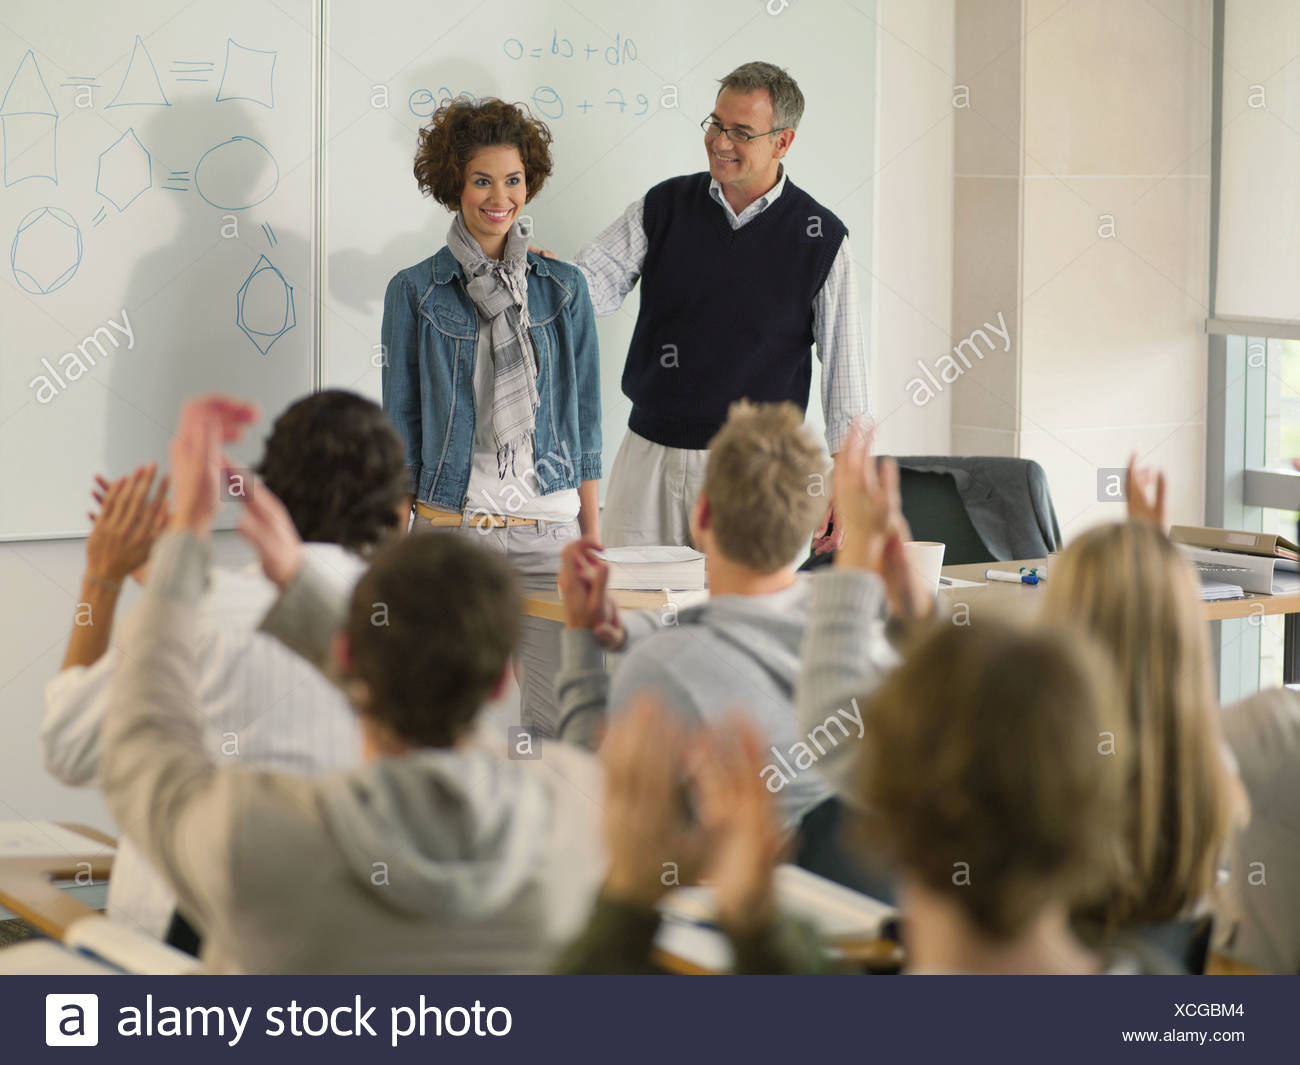 Professor and college student at front of classroom - Stock Image